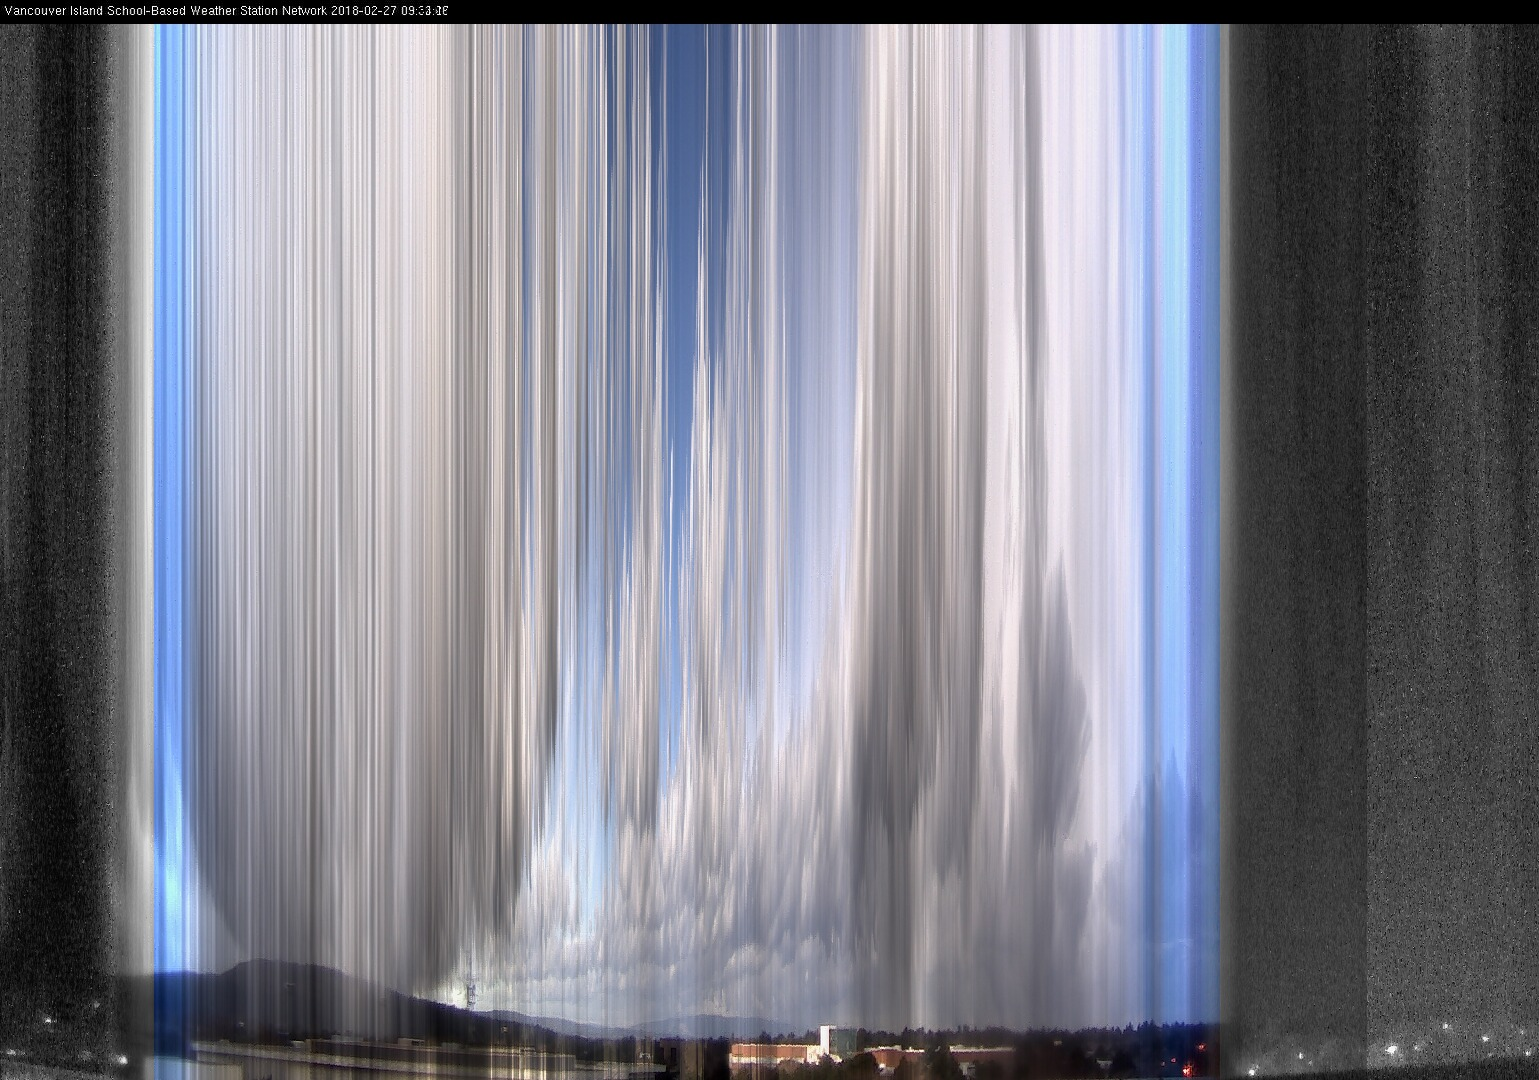 image of the sky seen from UVic, each column of pixels is a different minute, keogram